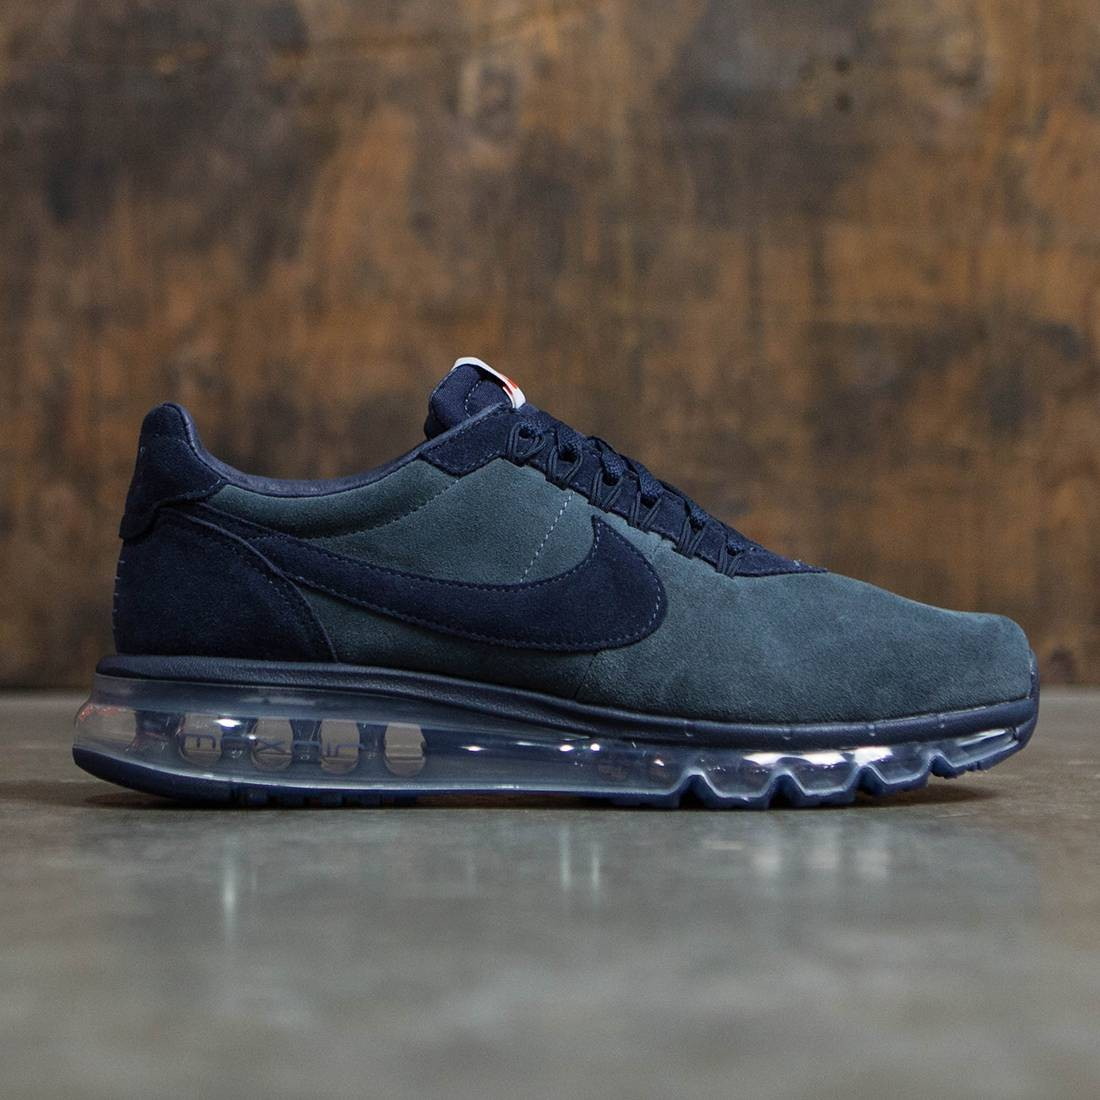 Nike Air Max Ld Zero Mens Shoes Blackblack Dark Grey